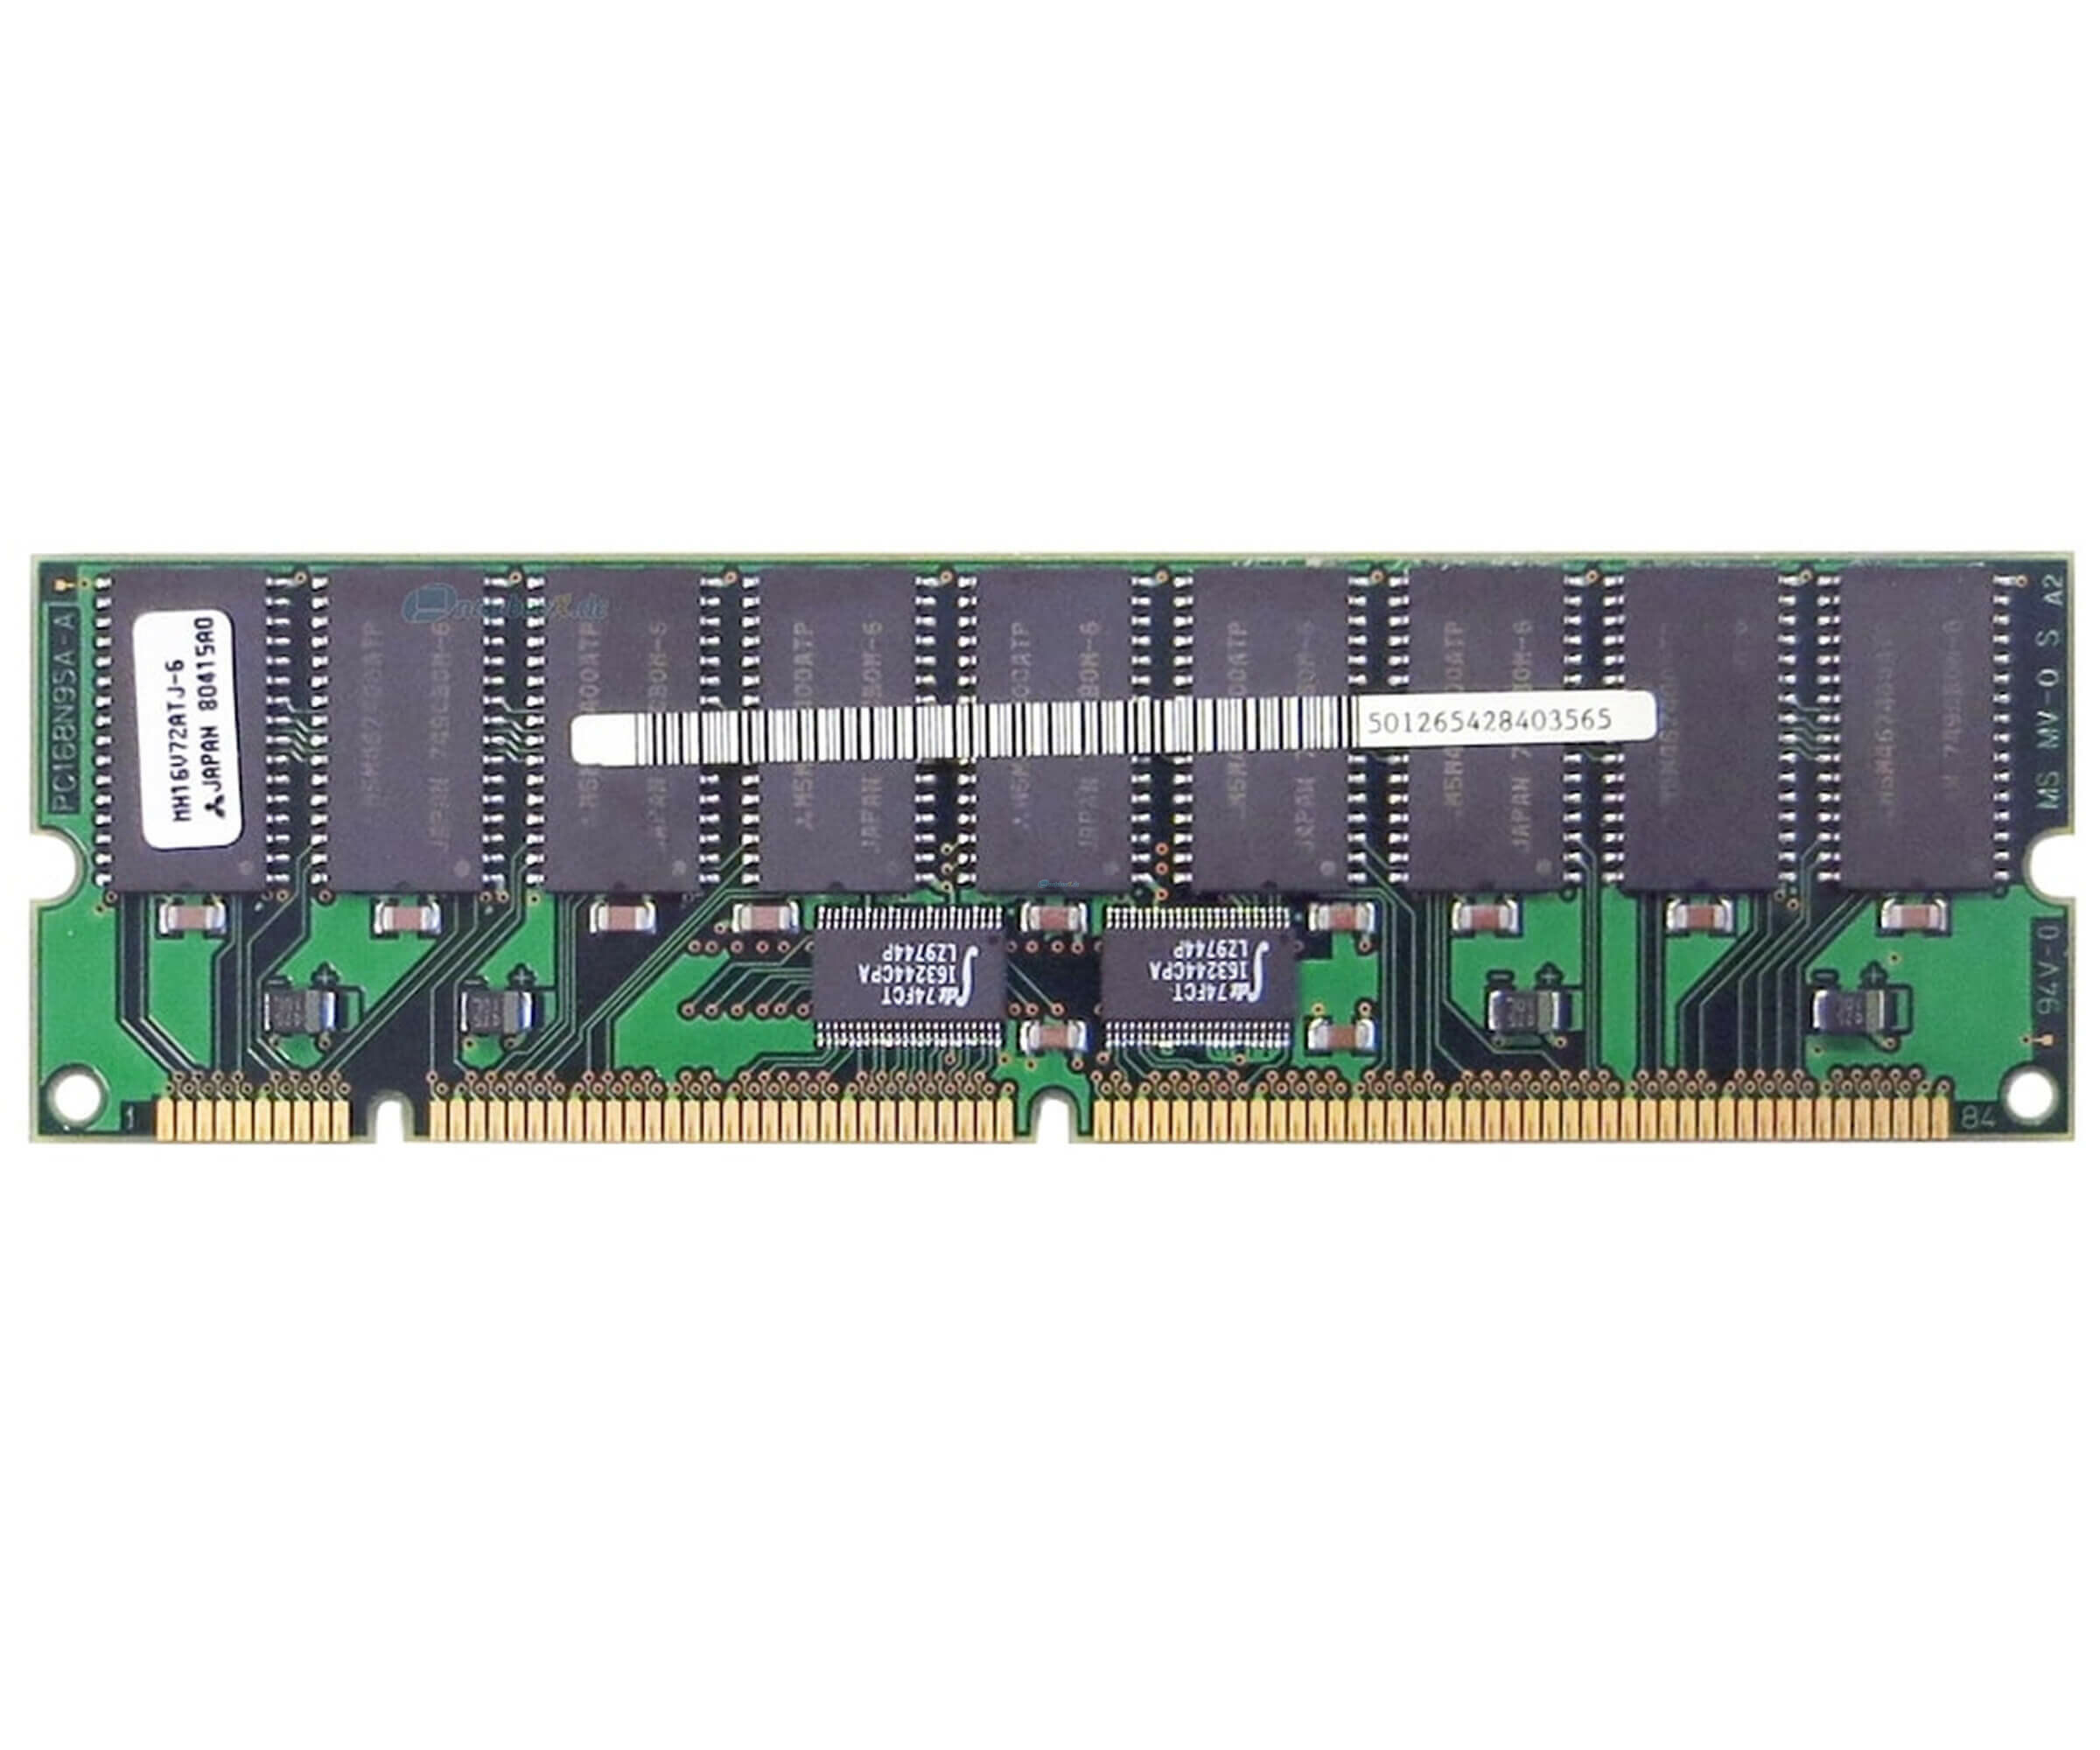 Sun X7023A Memory Kit - 1 GB (8x 128 MB) - EDO DIMM 168-PIN - RAM - 501-2654